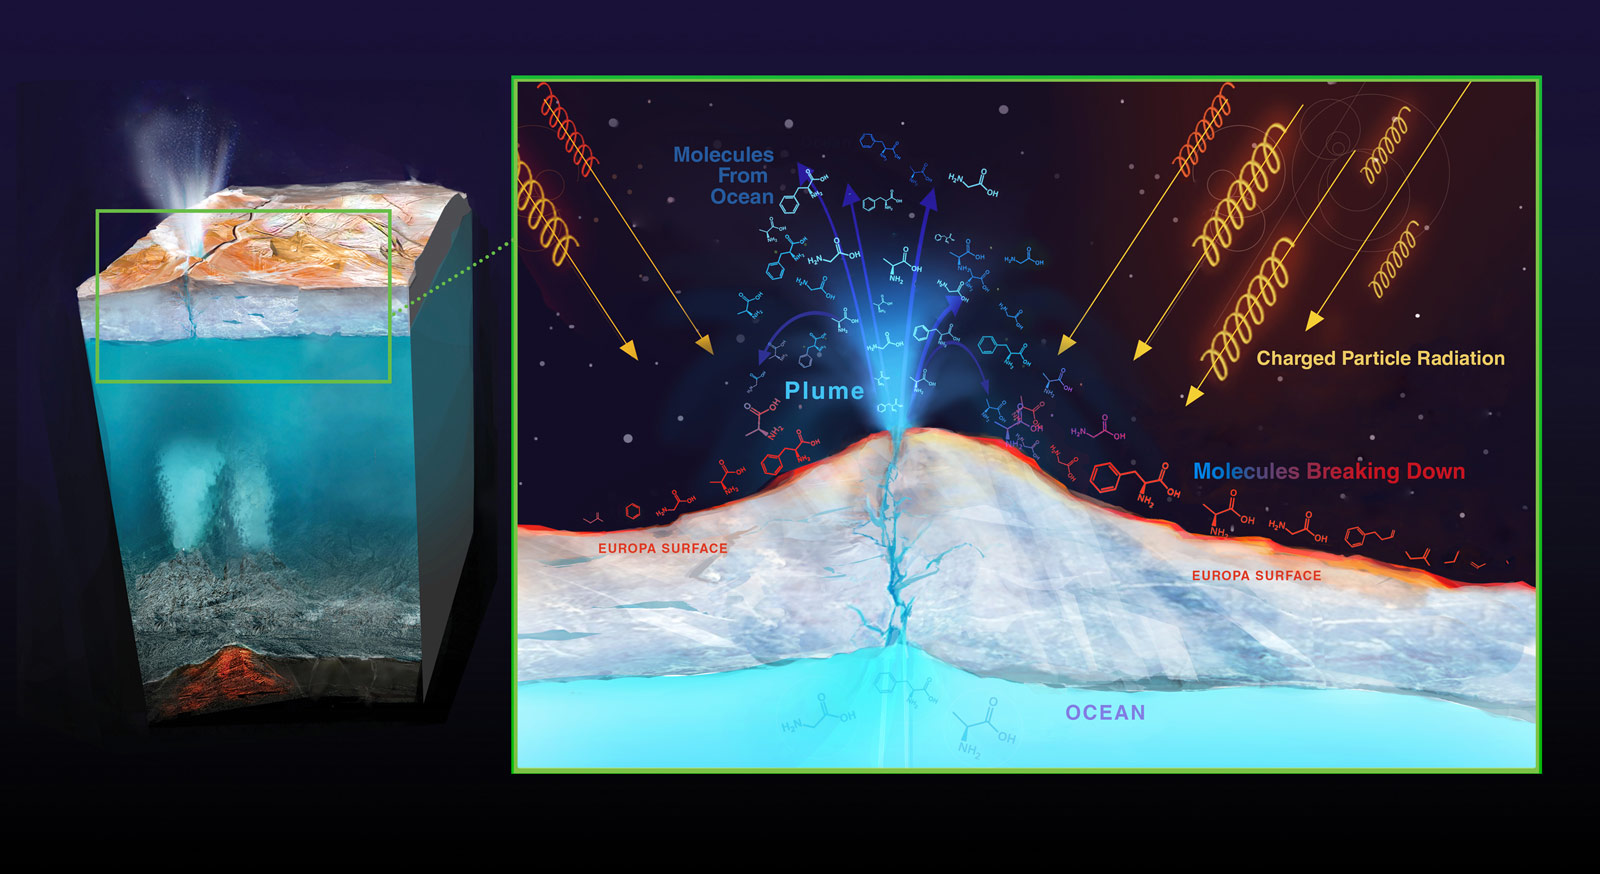 Cutaway view showing subsurface ocean and illustration of radiation from space.